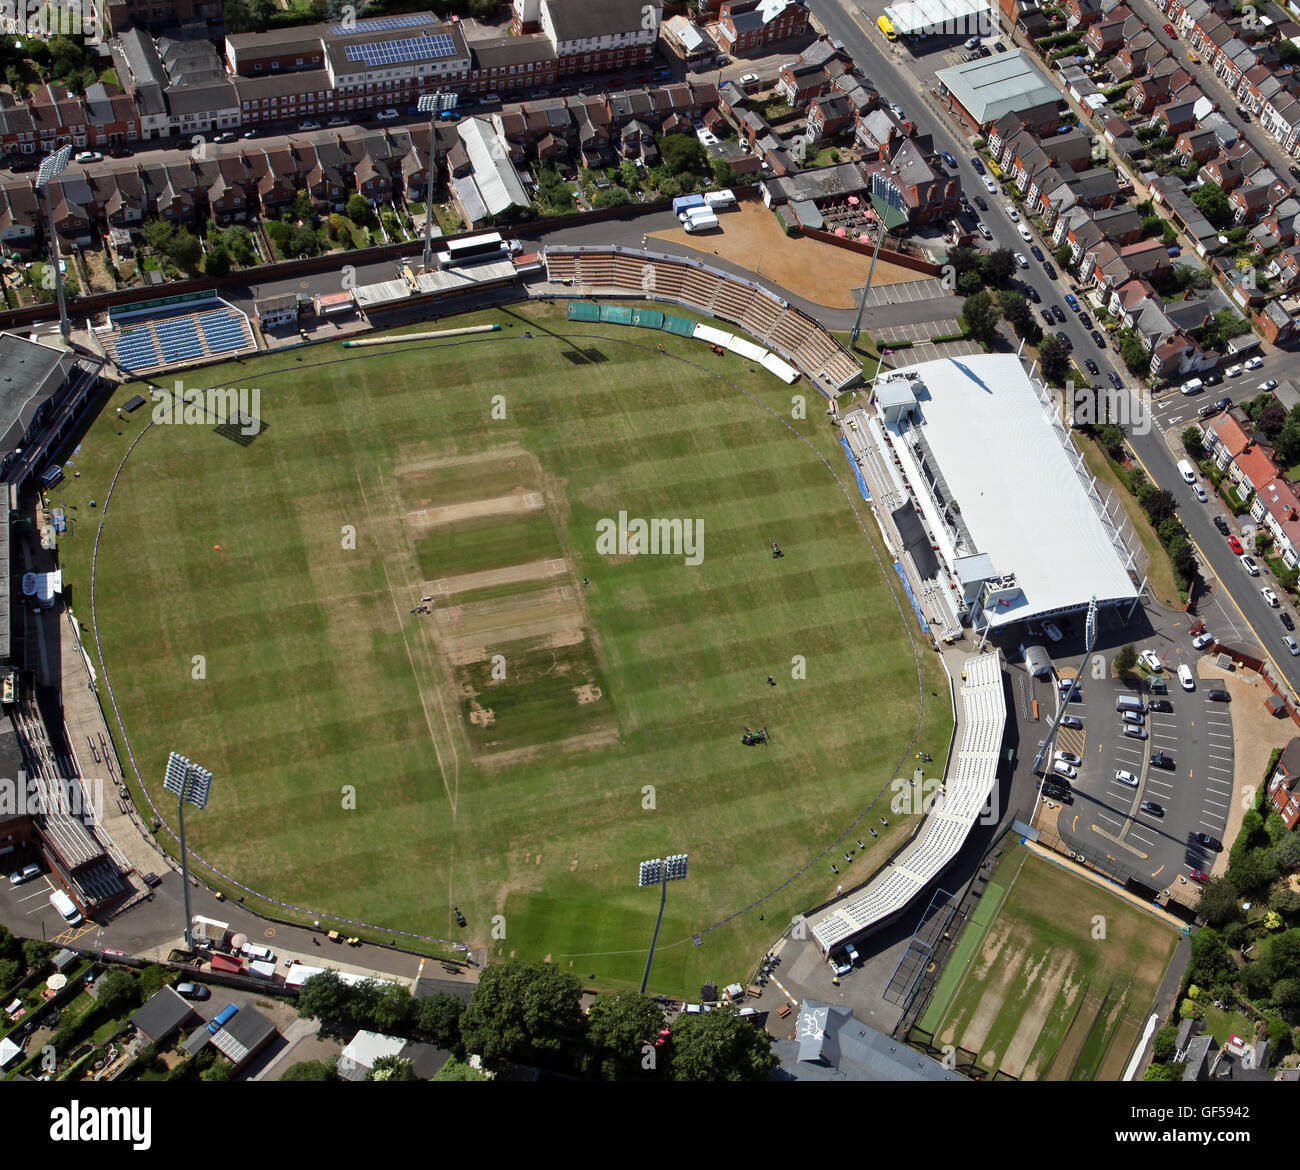 aerial view of The County Ground, home of Northamptonshire County Cricket Club, UK - Stock Image